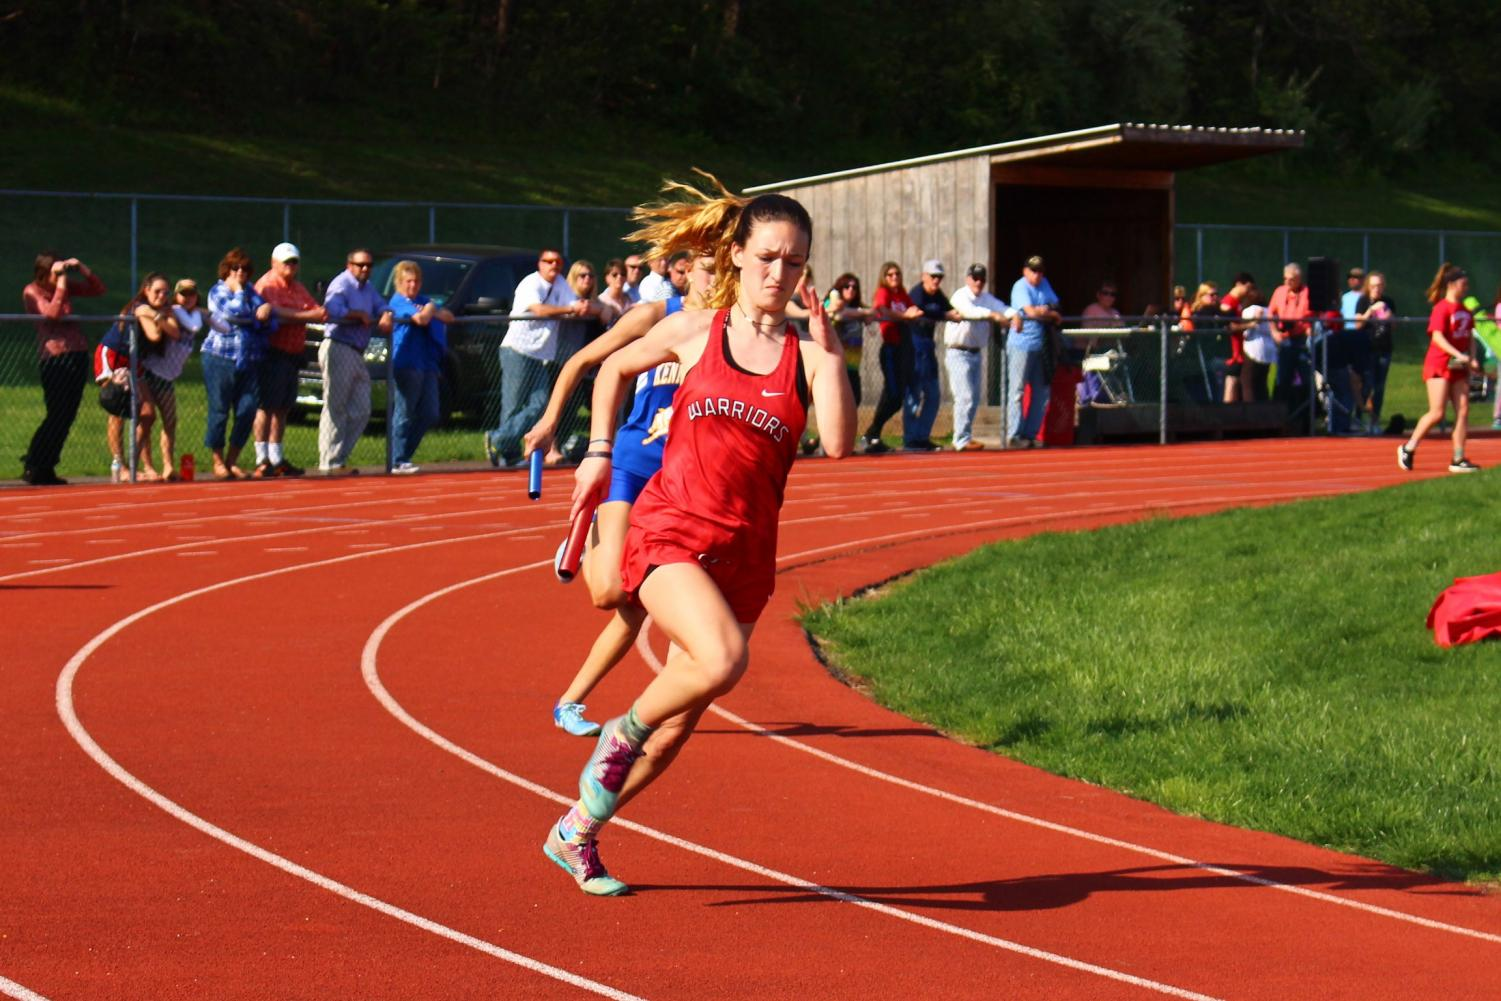 Sophomore+Julia+Bittner+takes+the+turn+in+the+4x100+relay.+In+the+end%2C+both+the+boys+and+girls+teams+for+the+Warriors+beat+the+Rams.+The+boys+score+was+111-39+and+the+girls+score+finished+at+128.5-21.5